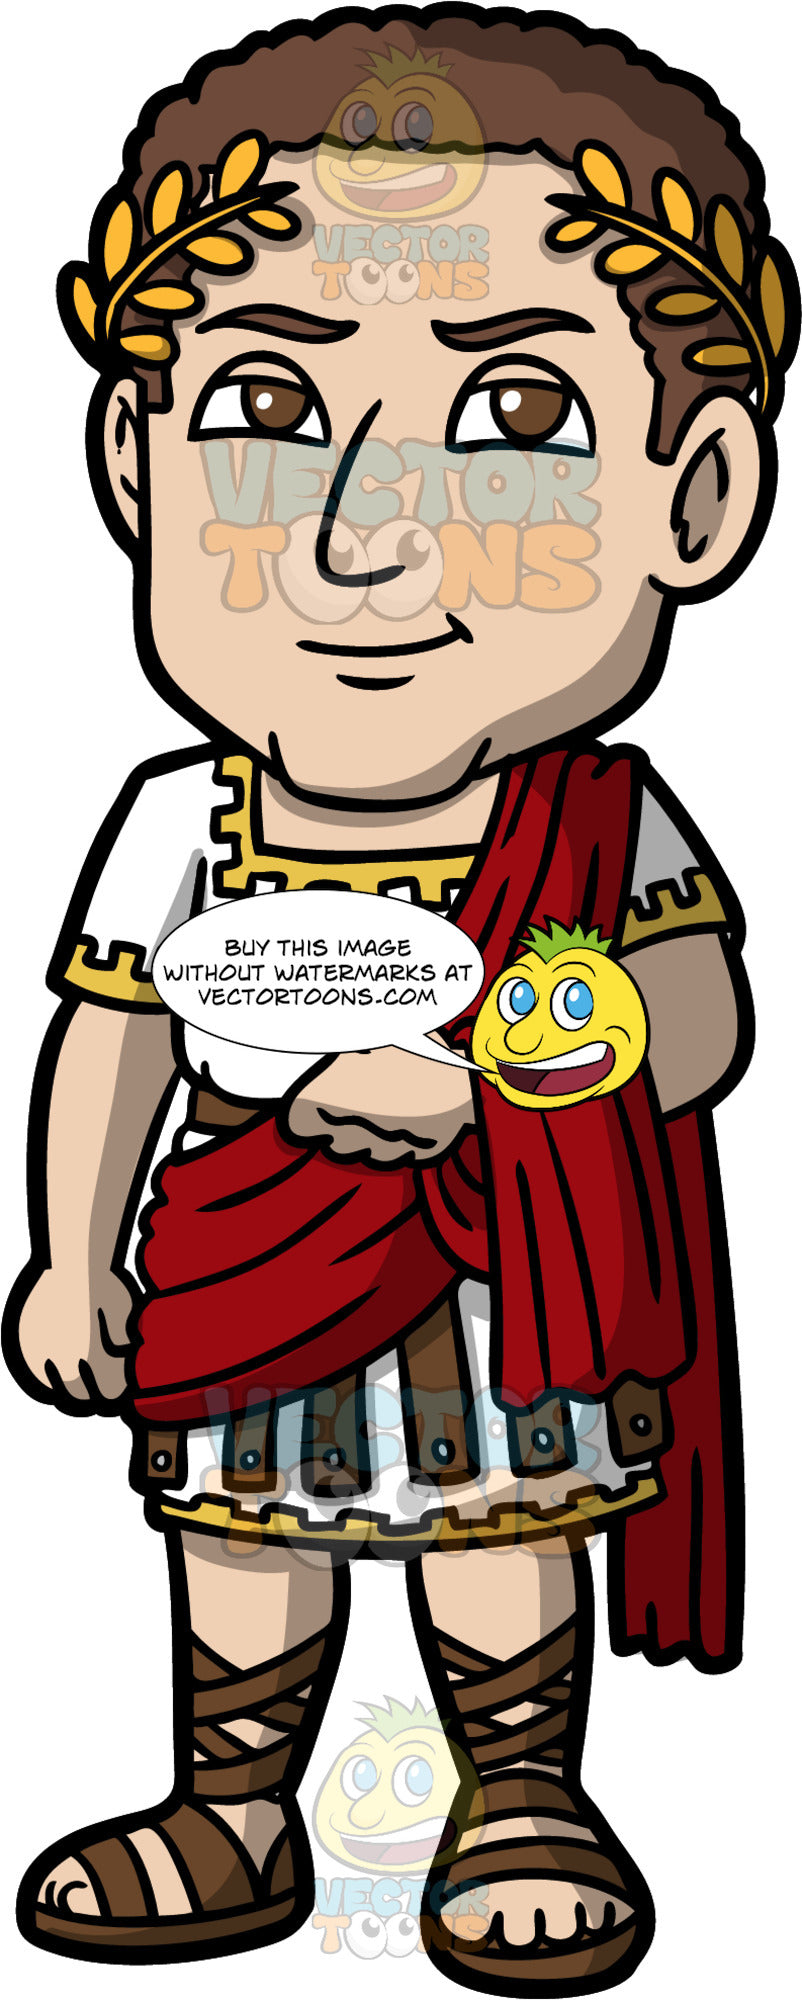 Julius Caesar. A man with a golden wreath in his brown hair, wearing traditional Roman tunic in white and yellow and brown leather, a red toga over one shoulder, and brown leather sandals